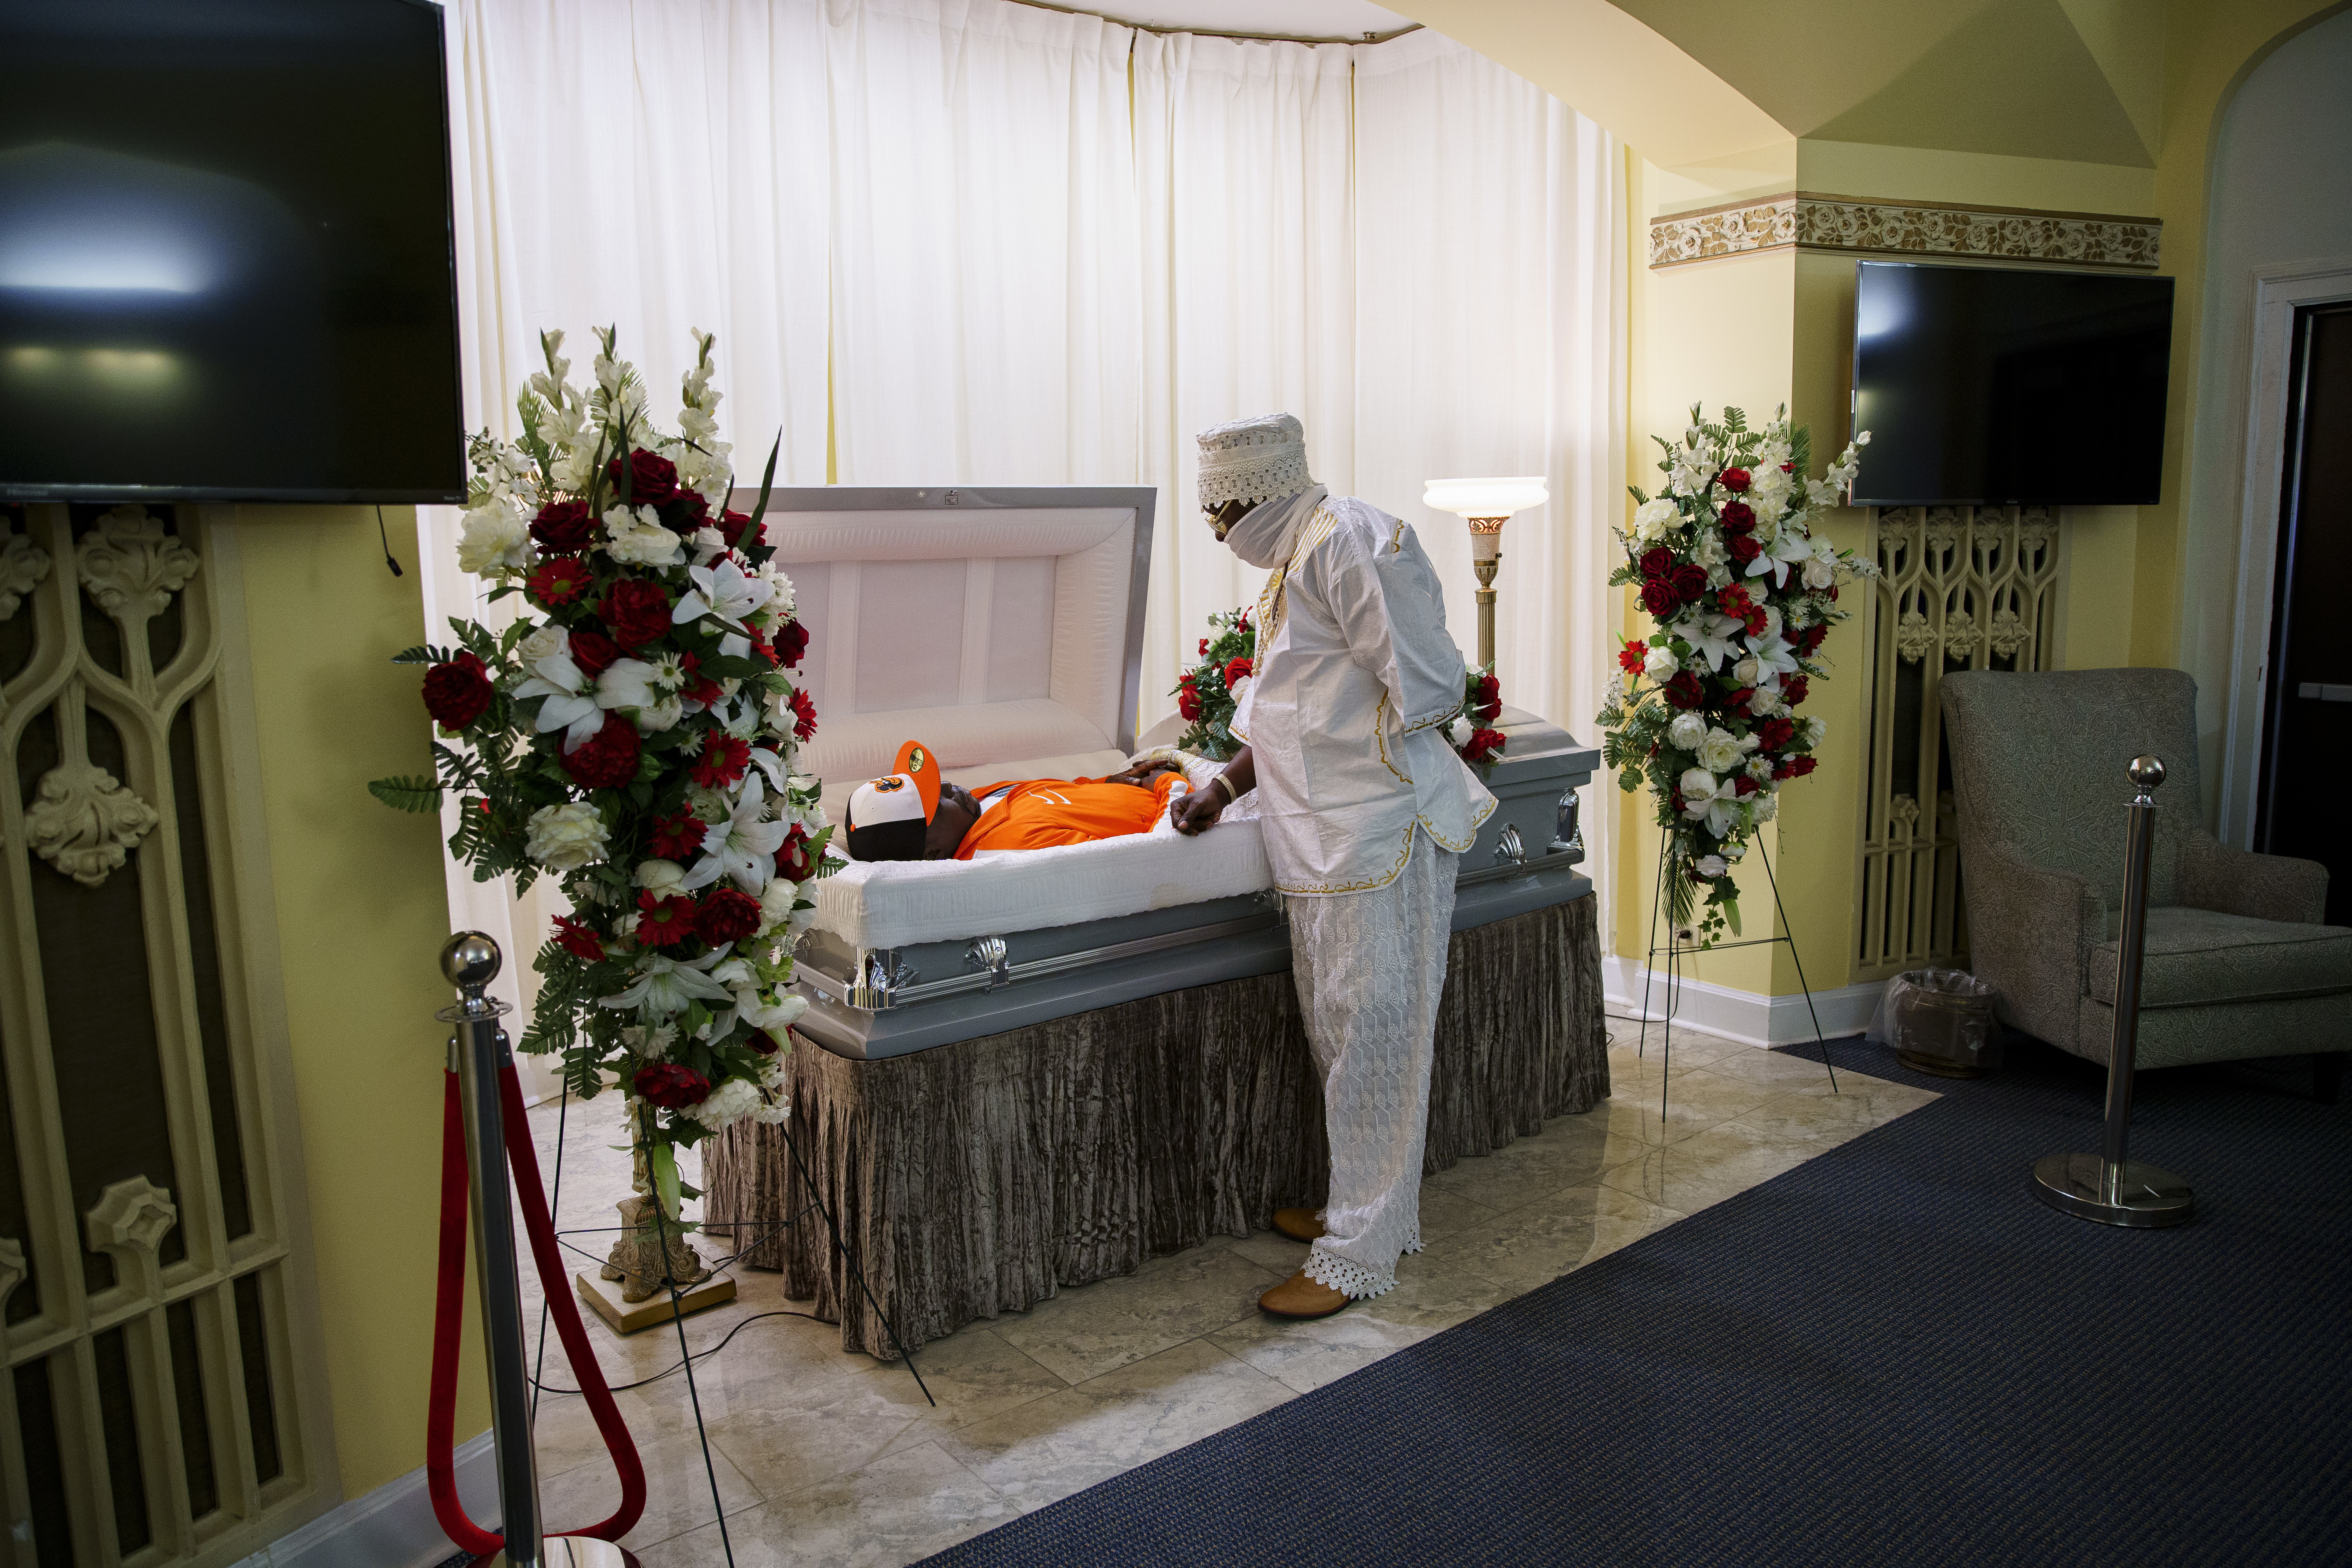 Olumide Olupitan looks down at the body of his brother Oyedele Olupitan at his visitation Sept. 5 at Sacred Memories Funeral Home in South Shore. Oyedele Olupitan, 42, had been shot in the head on Aug. 18 in Washington Heights on the South Side.